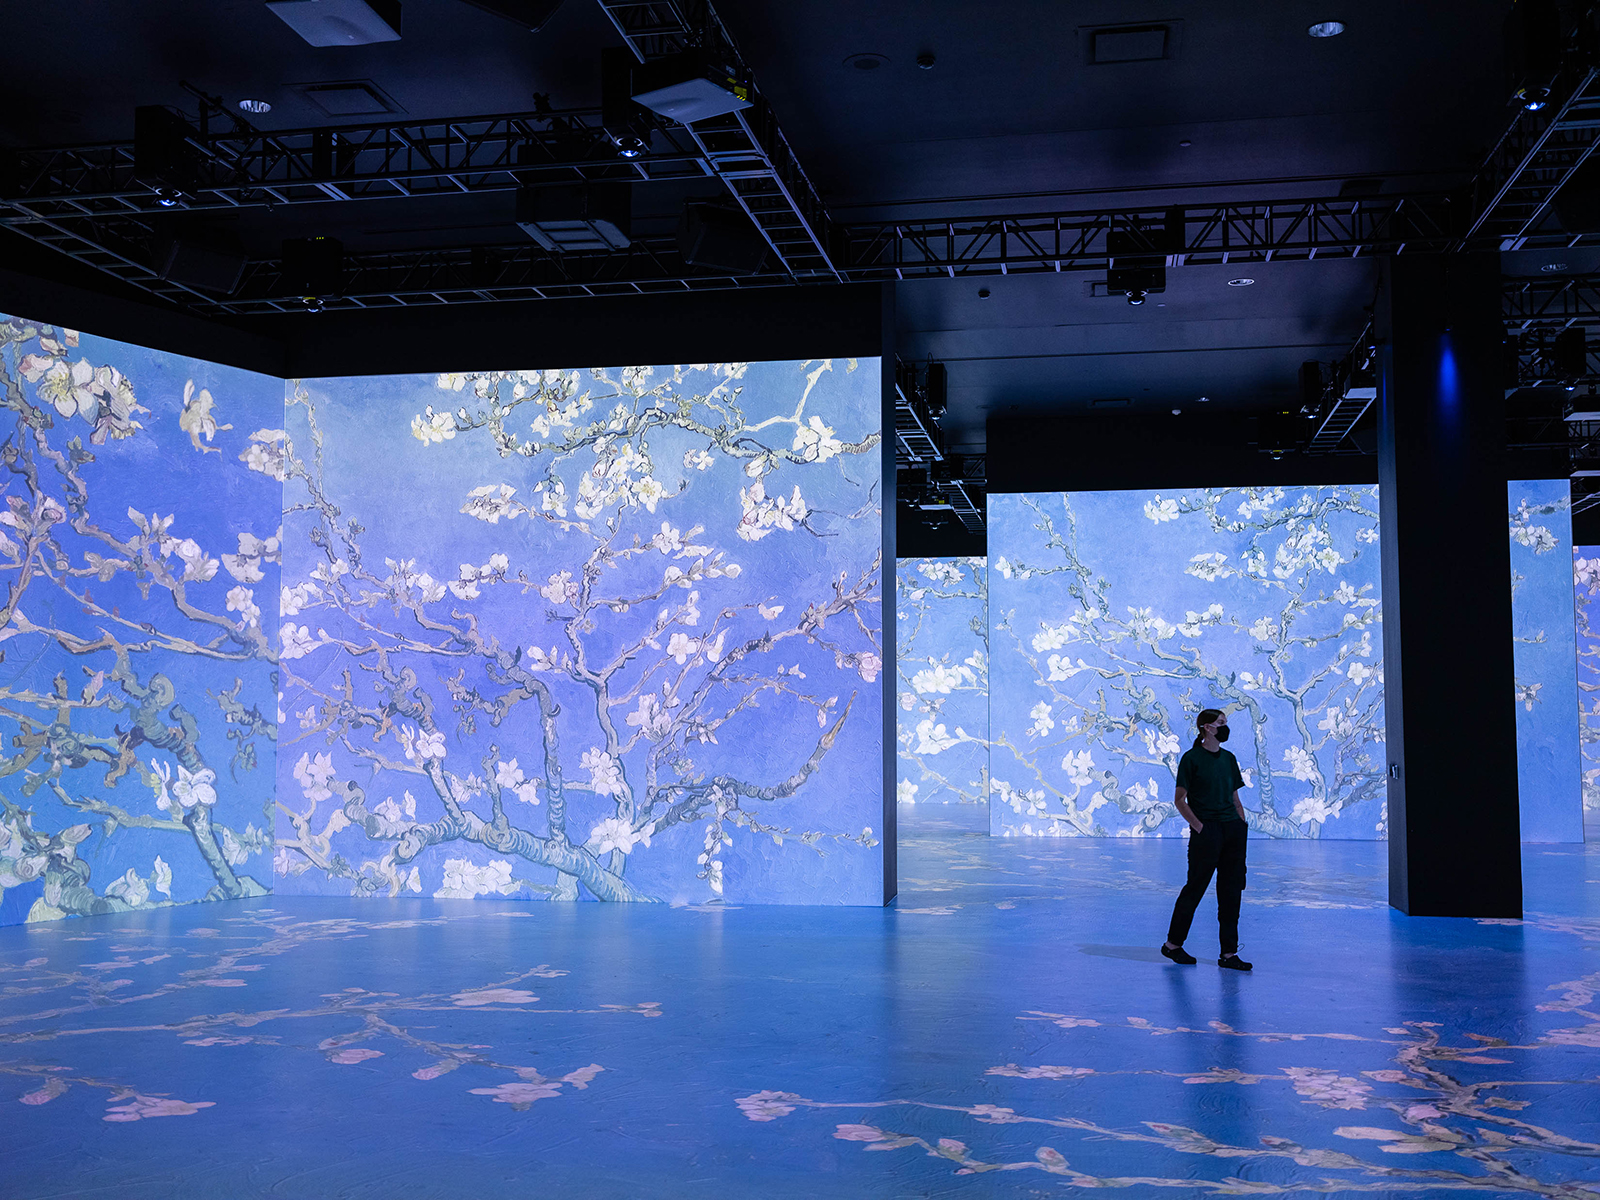 Van Gogh's blossom paintings projected onto large screens and the floor